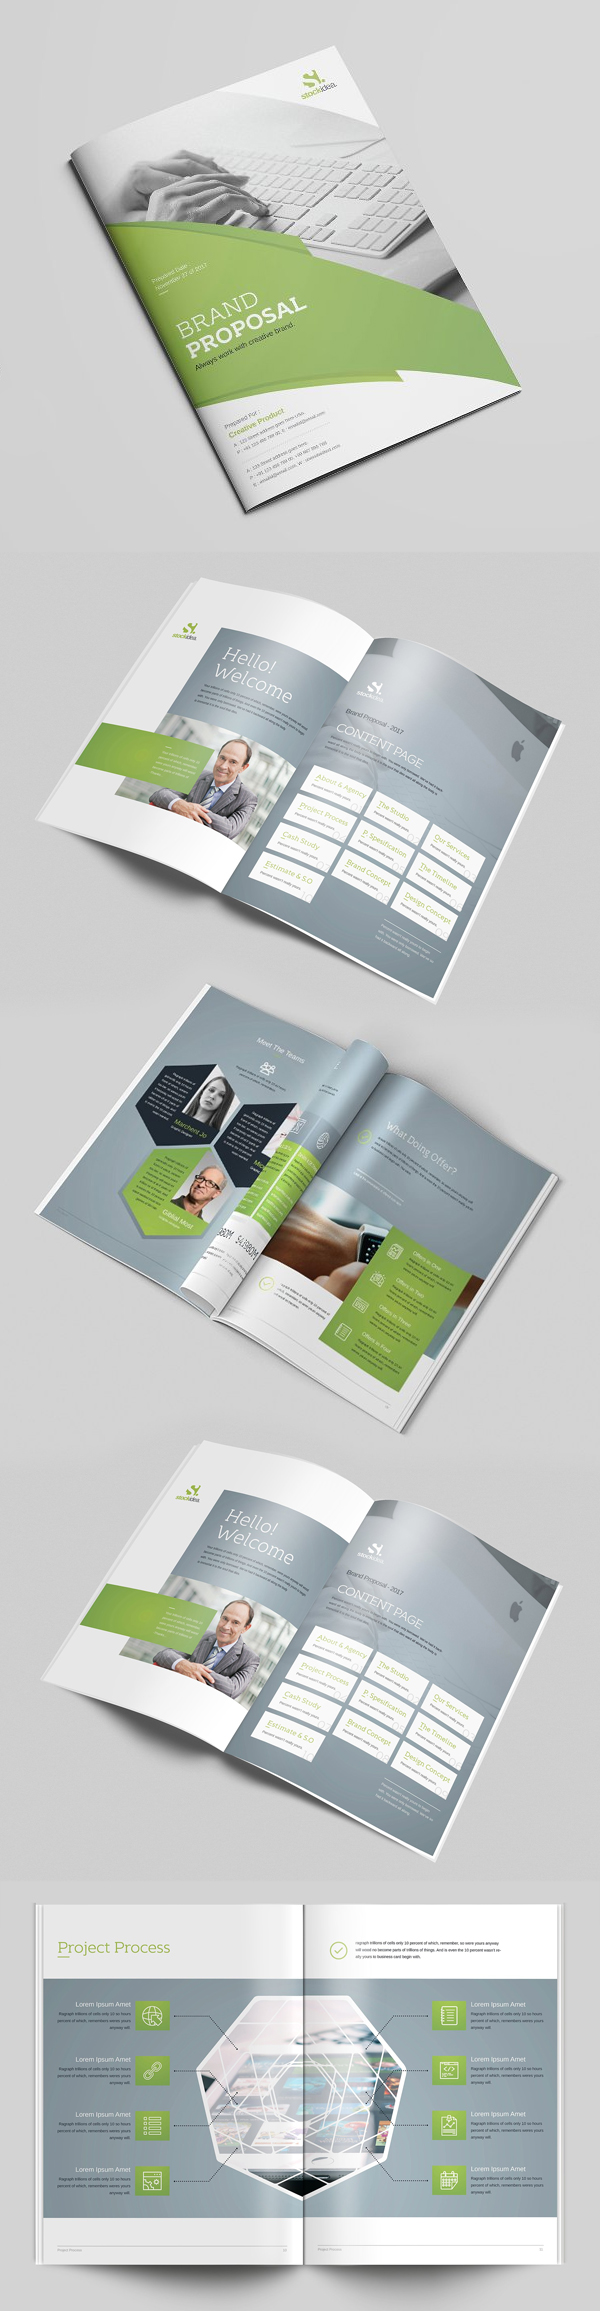 Modern Business Template Design